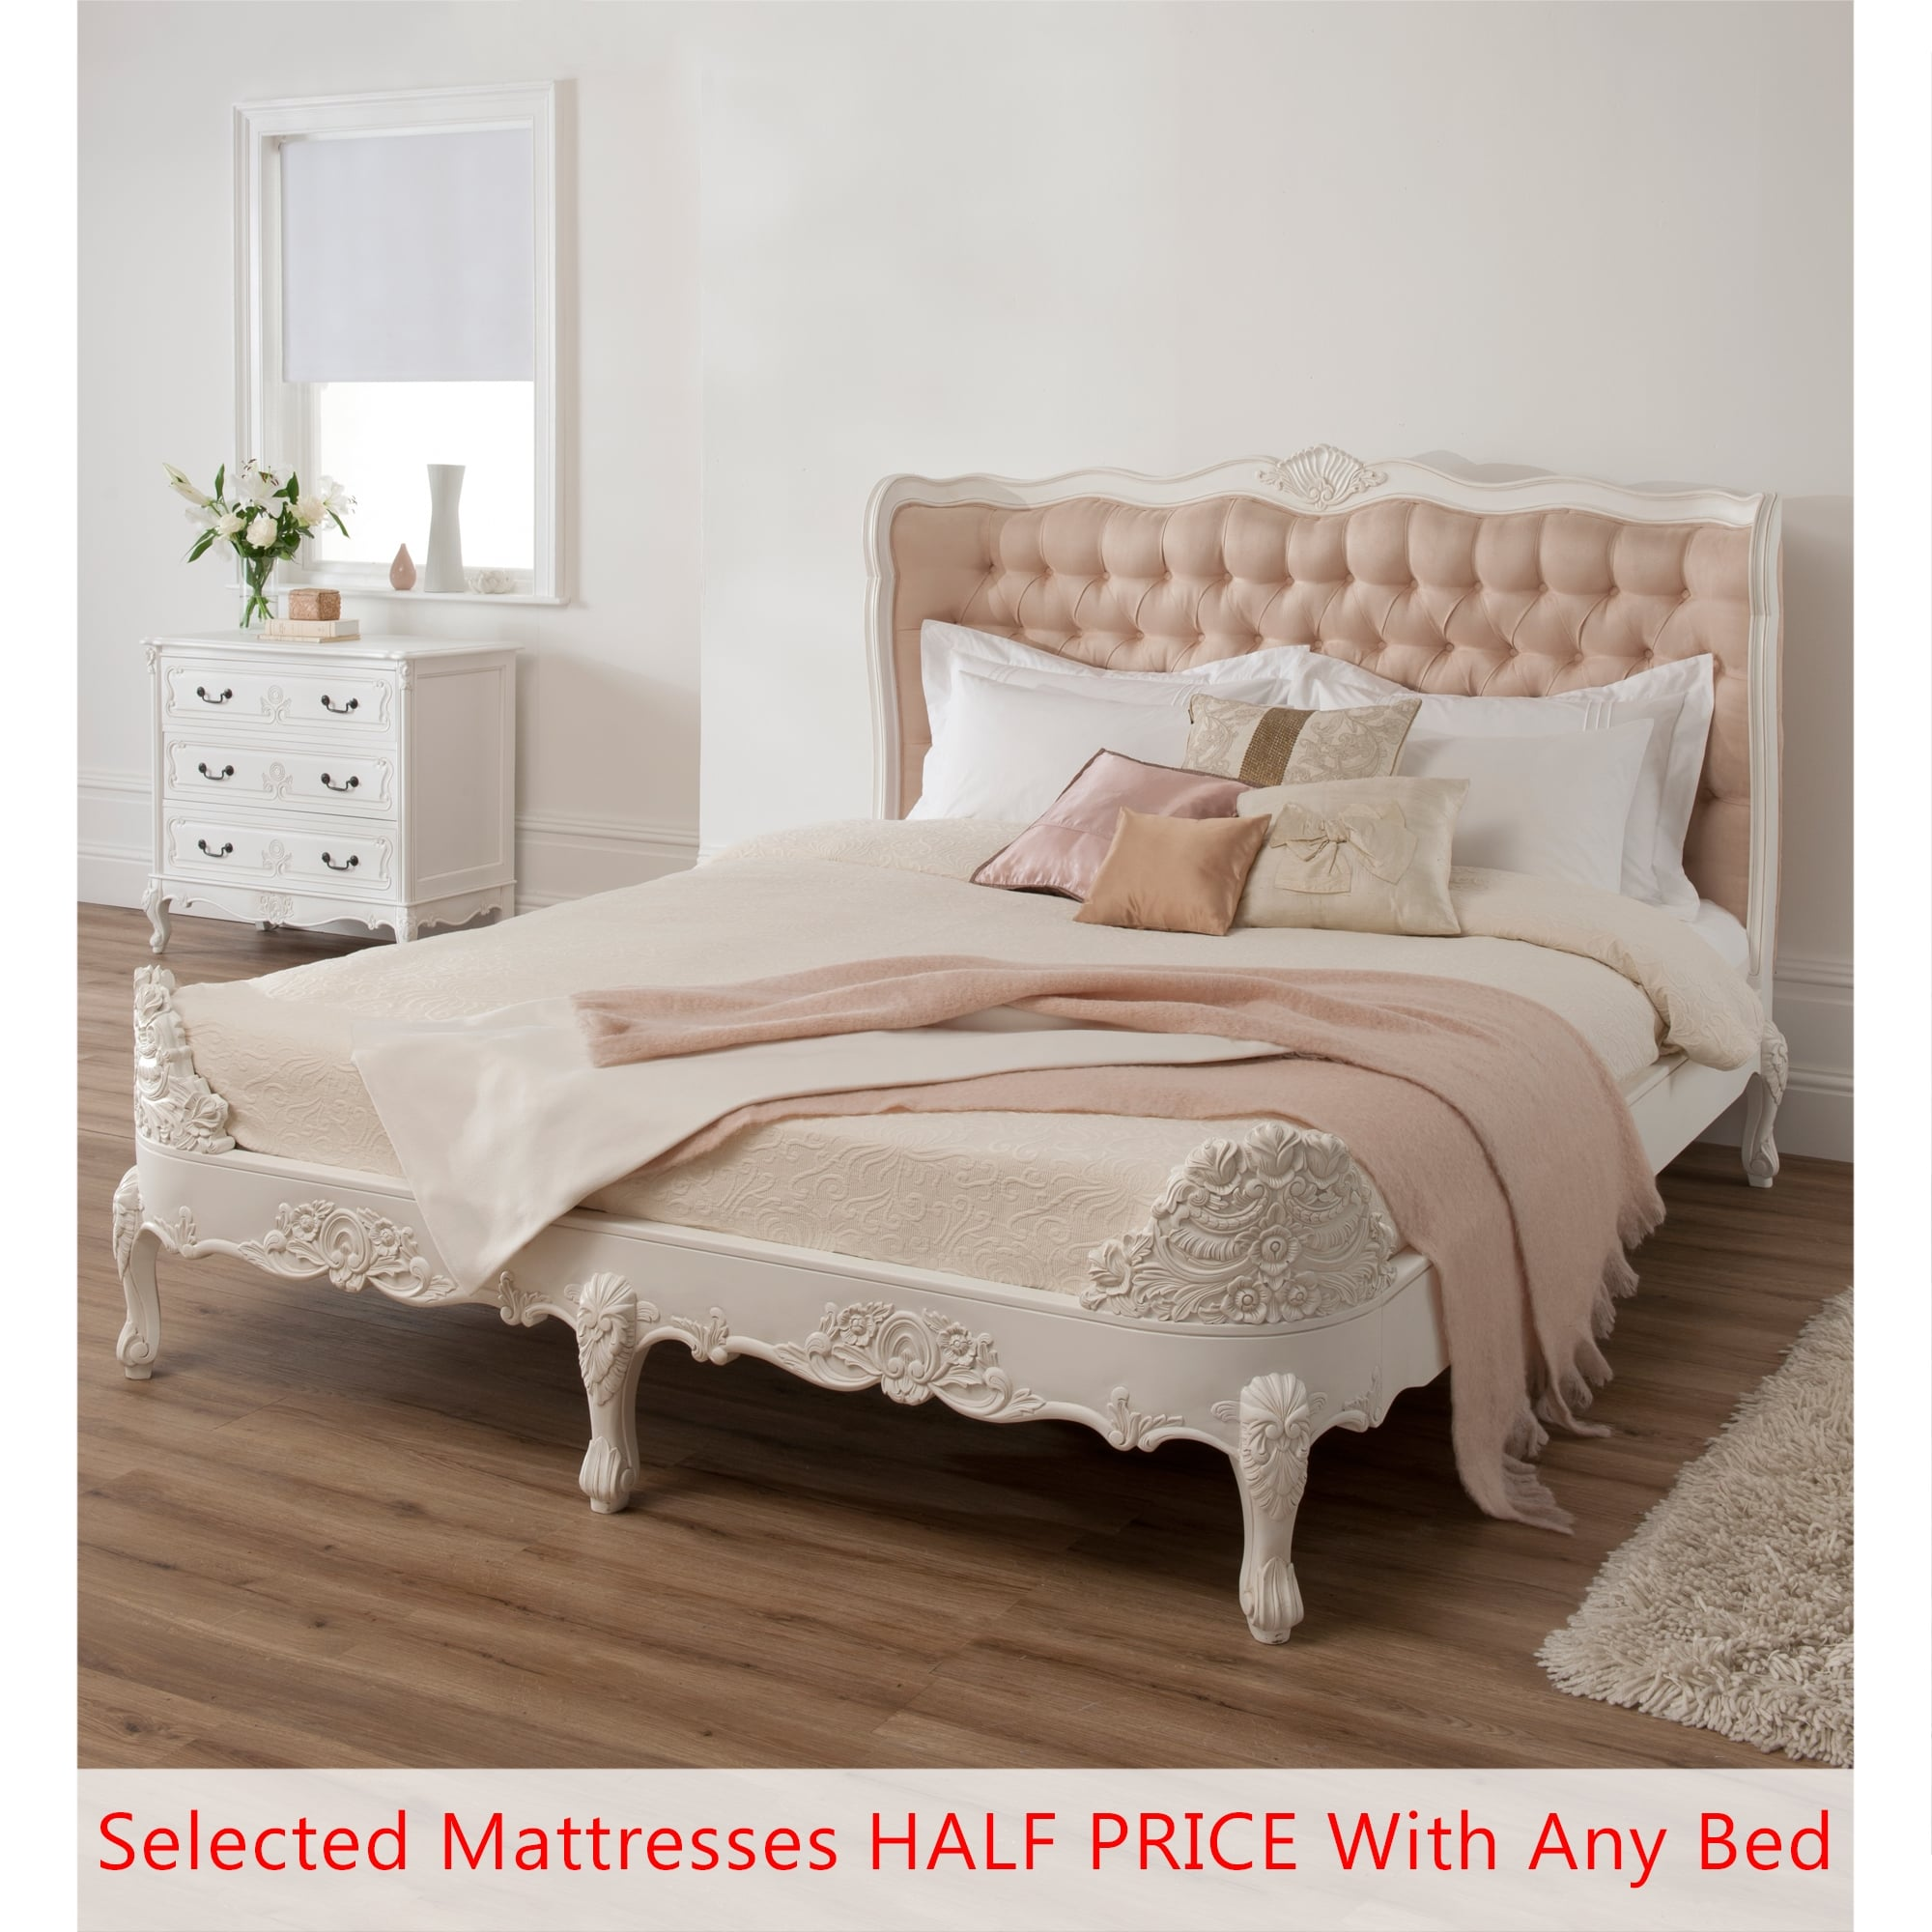 s set category foam product archives mattress mattresses happy centers freedom memory home king